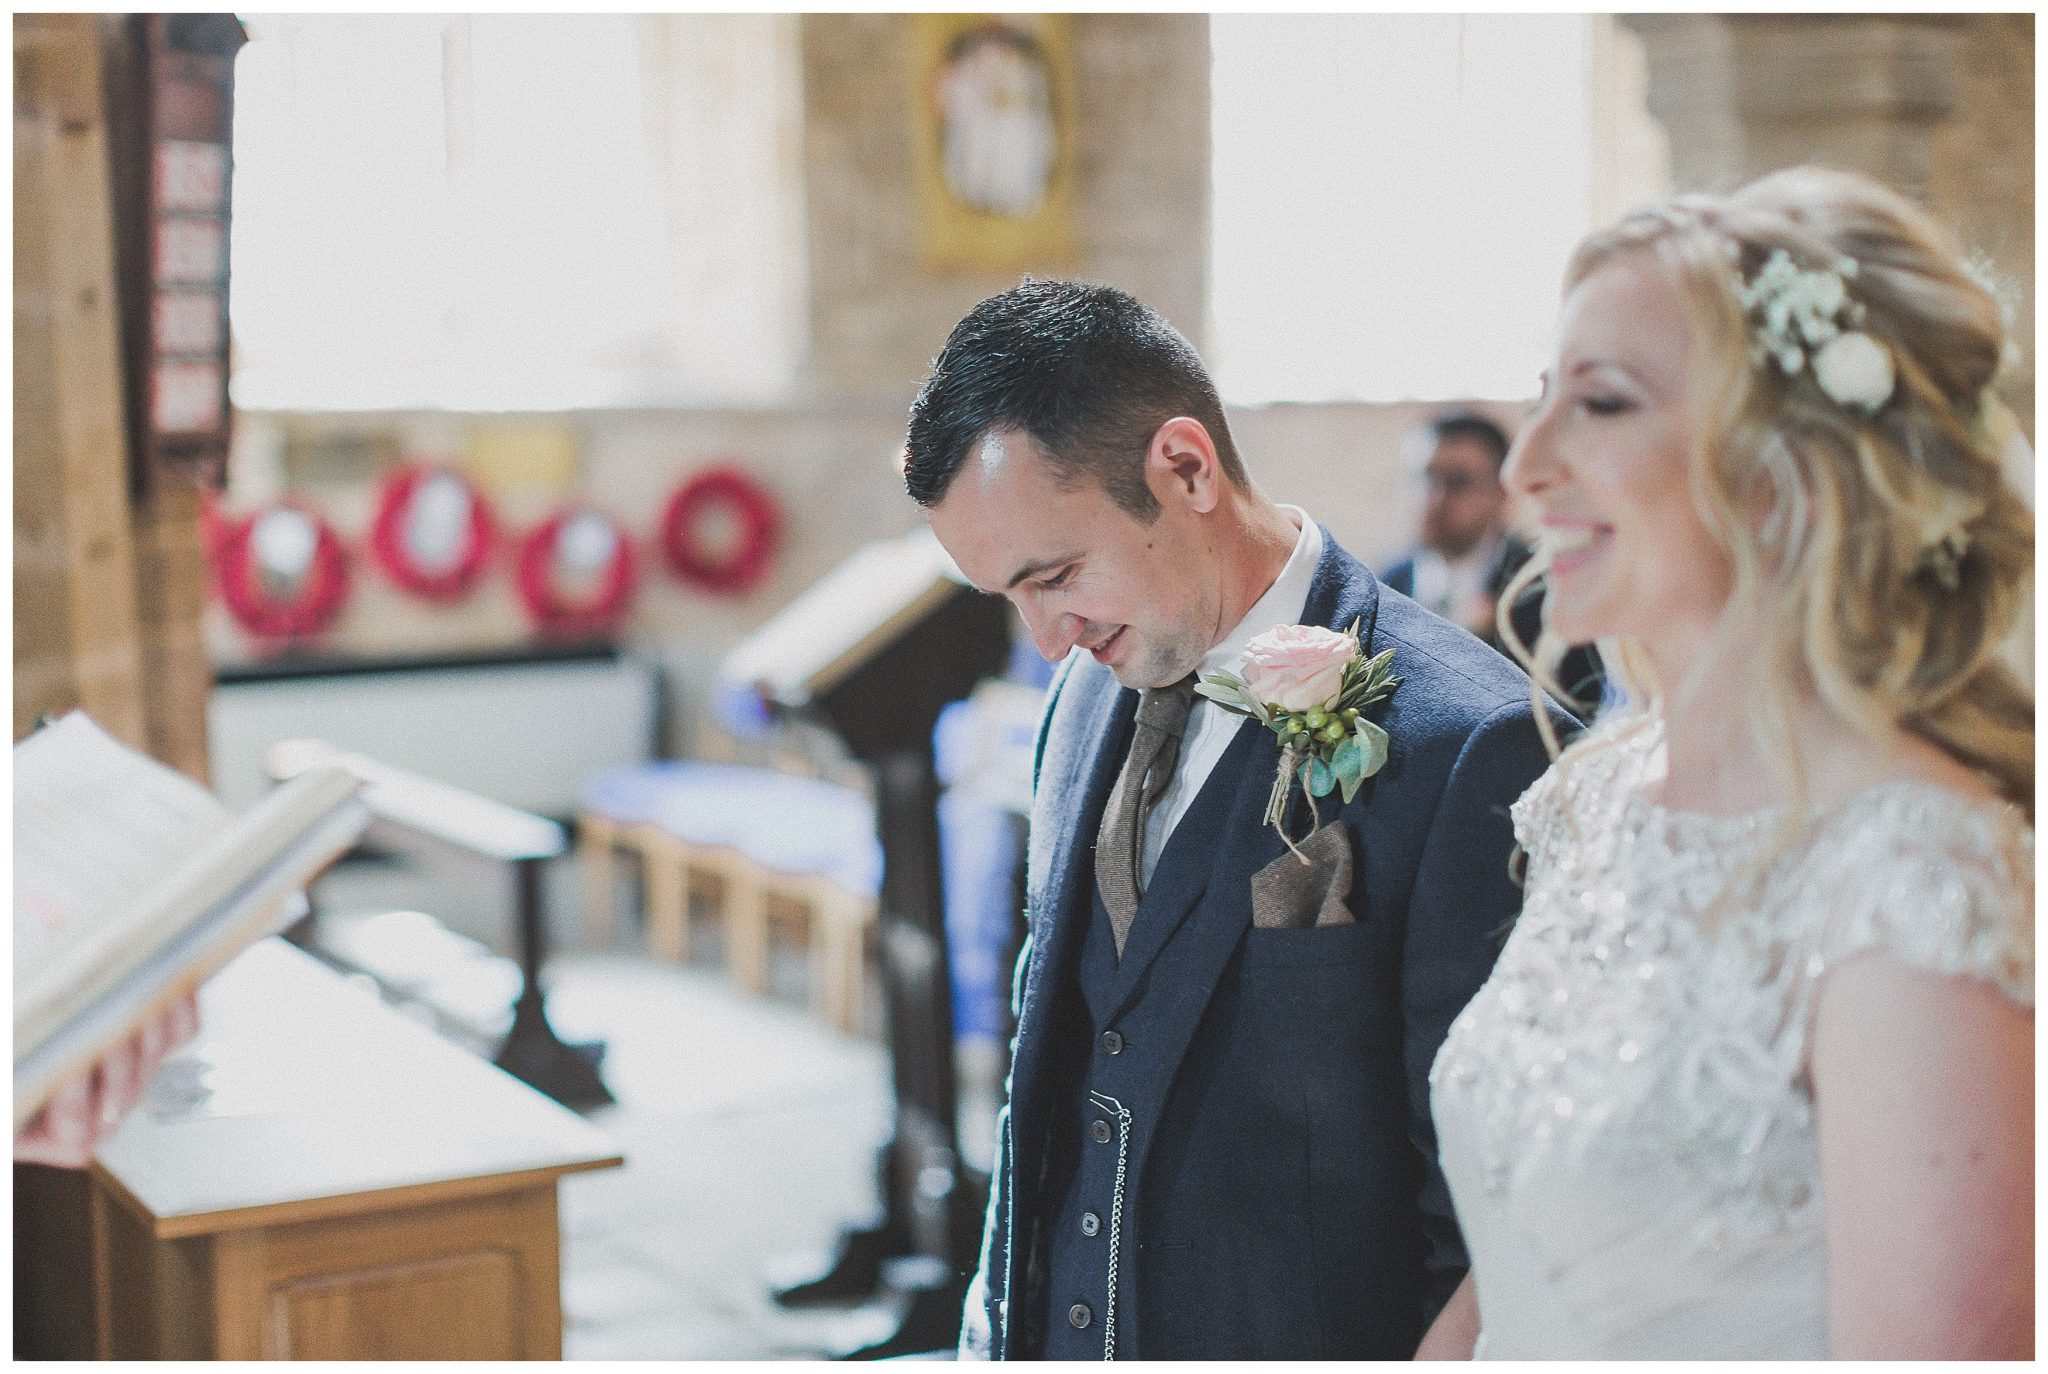 Daniel smiling in the curch with Hayley beside him